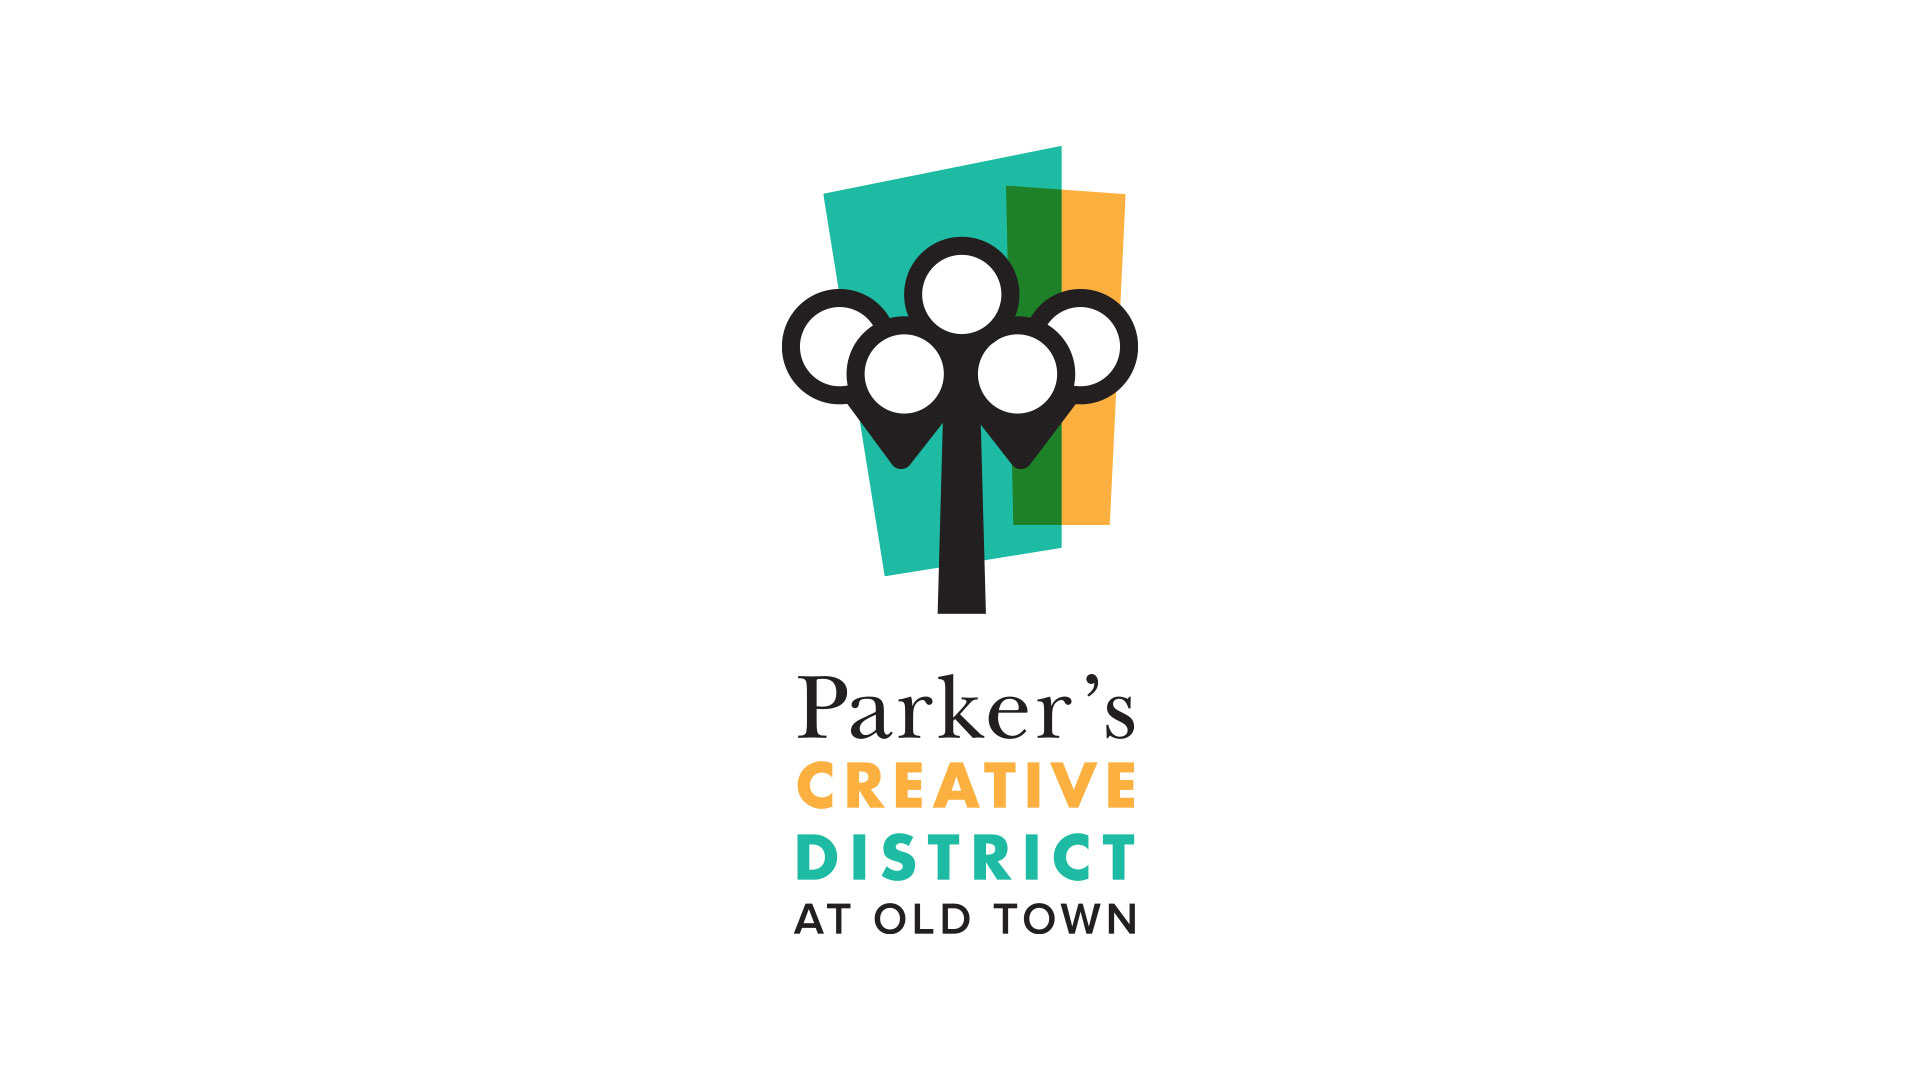 Parker Creative District at Old Town | Shane Harris